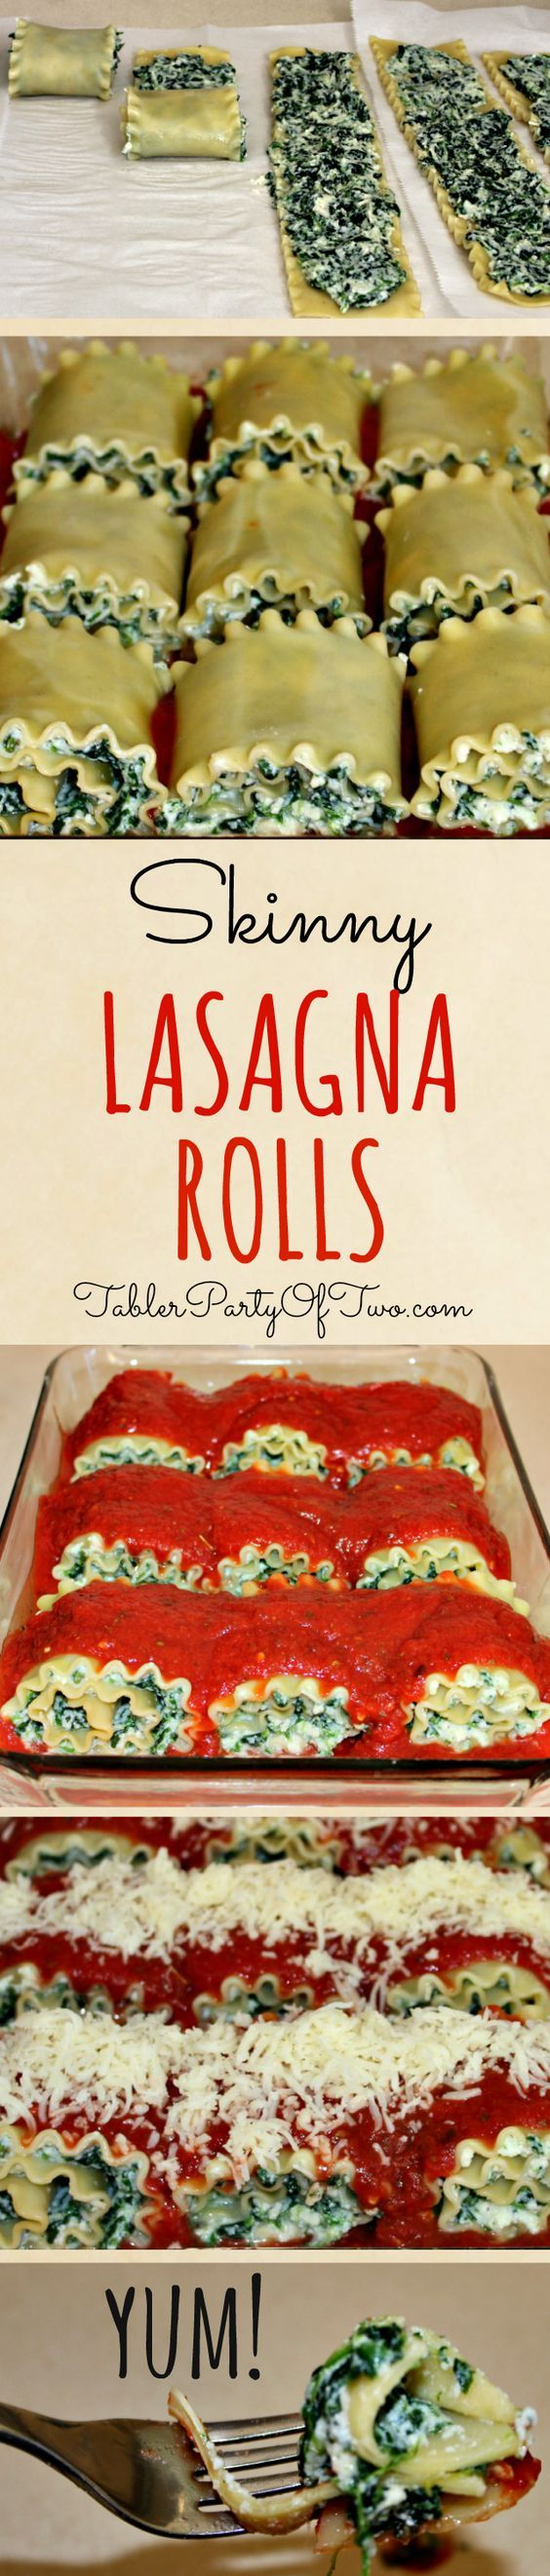 """These Skinny Lasagna Rolls are really easy to make and are a """"no-guilt"""" way to enjoy the guilty pleasure of lasagna! Have one roll with a side of salad for a perfectly healthy dinner! Tabler Party of Two 